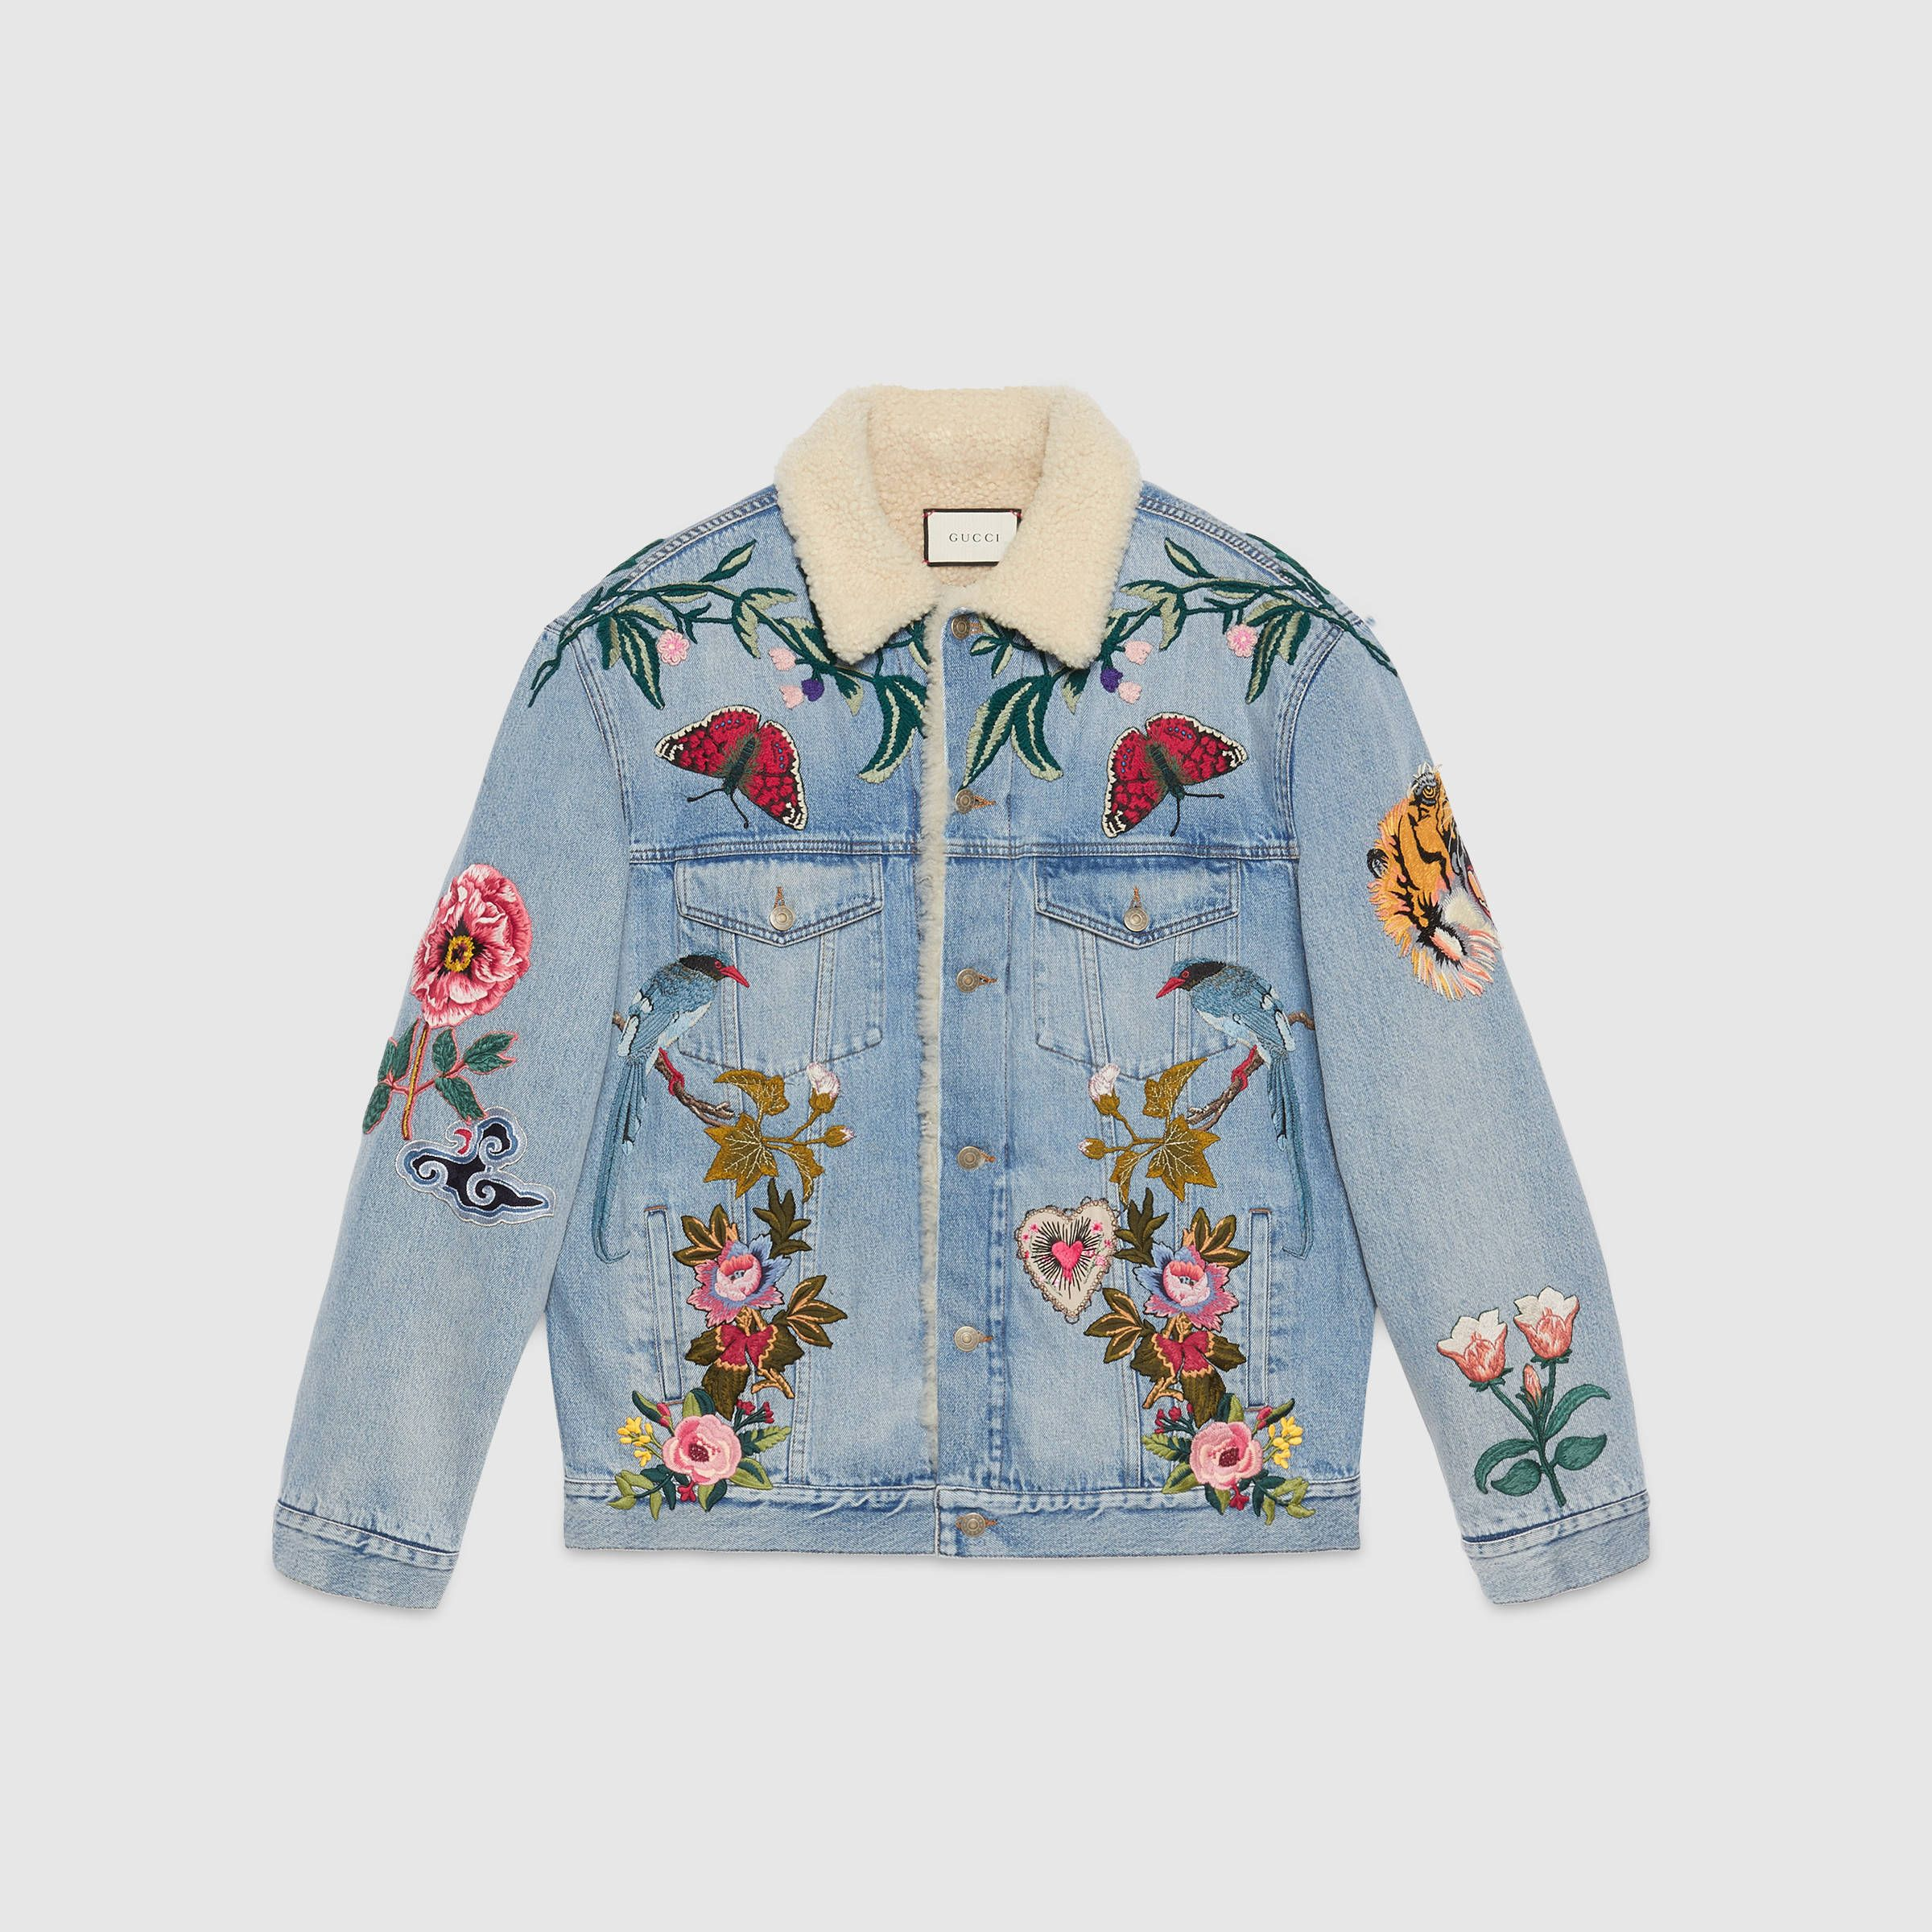 7229b9bd375 Shop the Embroidered denim jacket with shearling by Gucci. Inspired by a  patched denim jacket